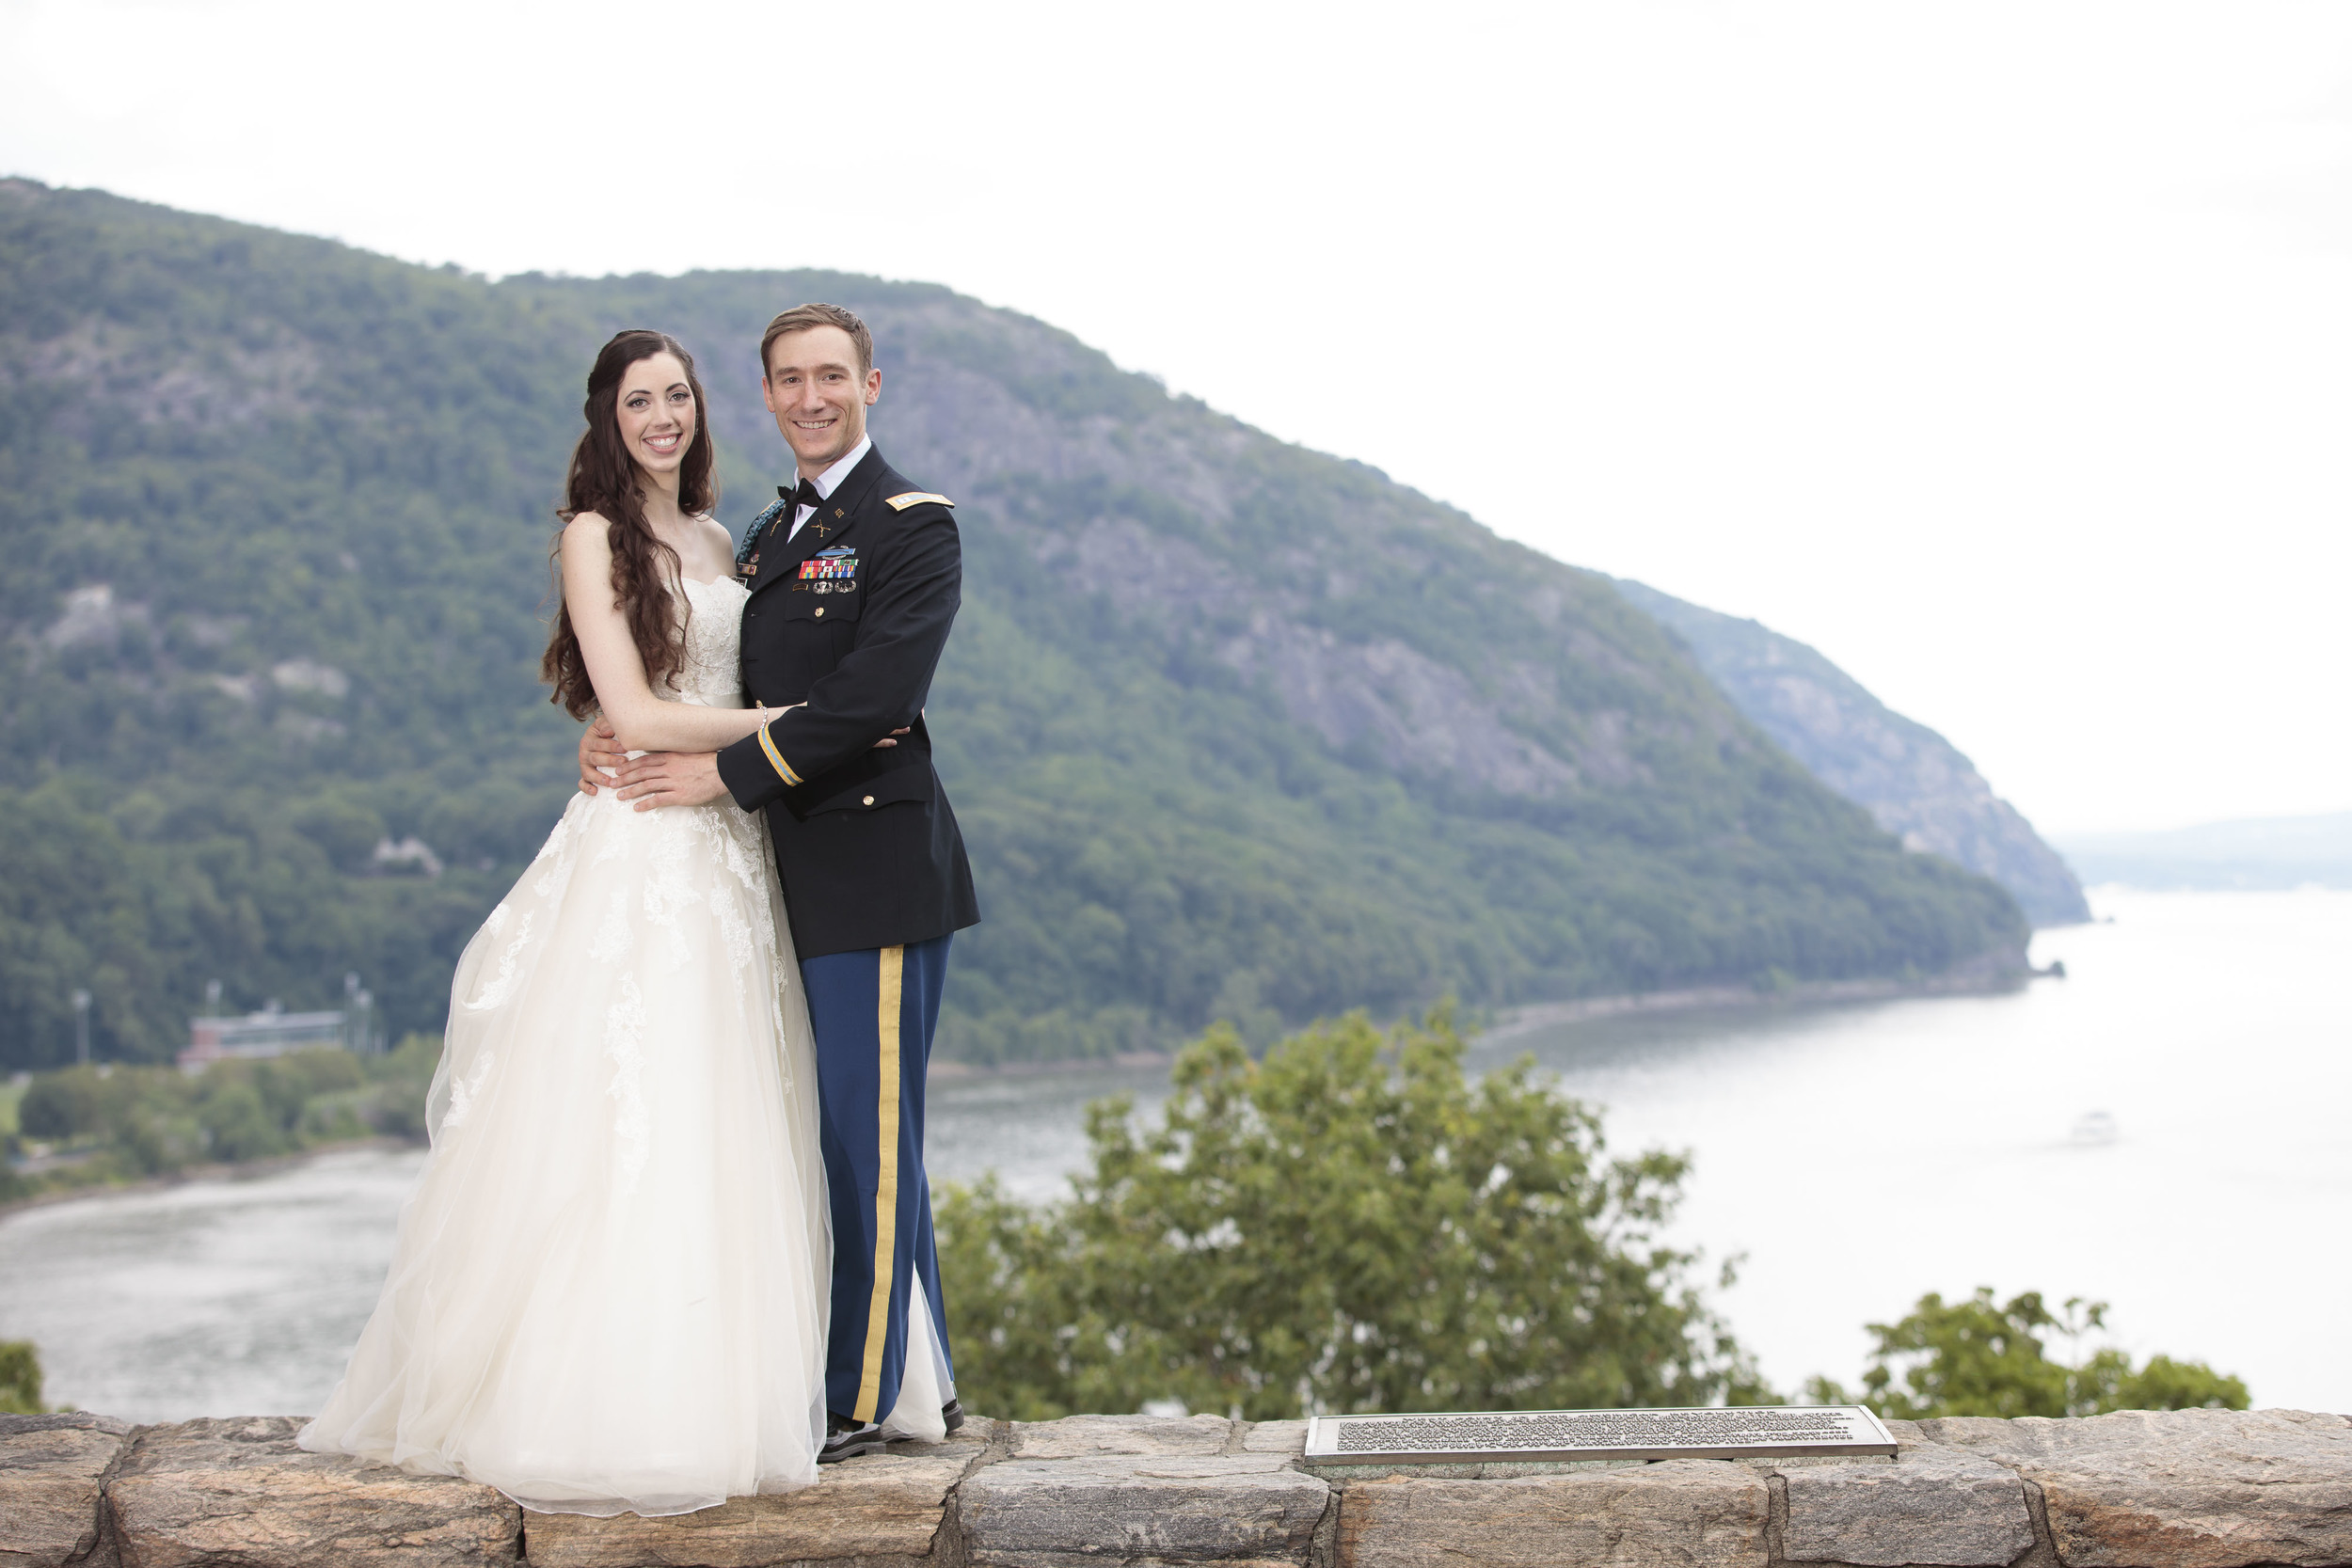 West_Point_Wedding_Photographer_NY_3013.JPG